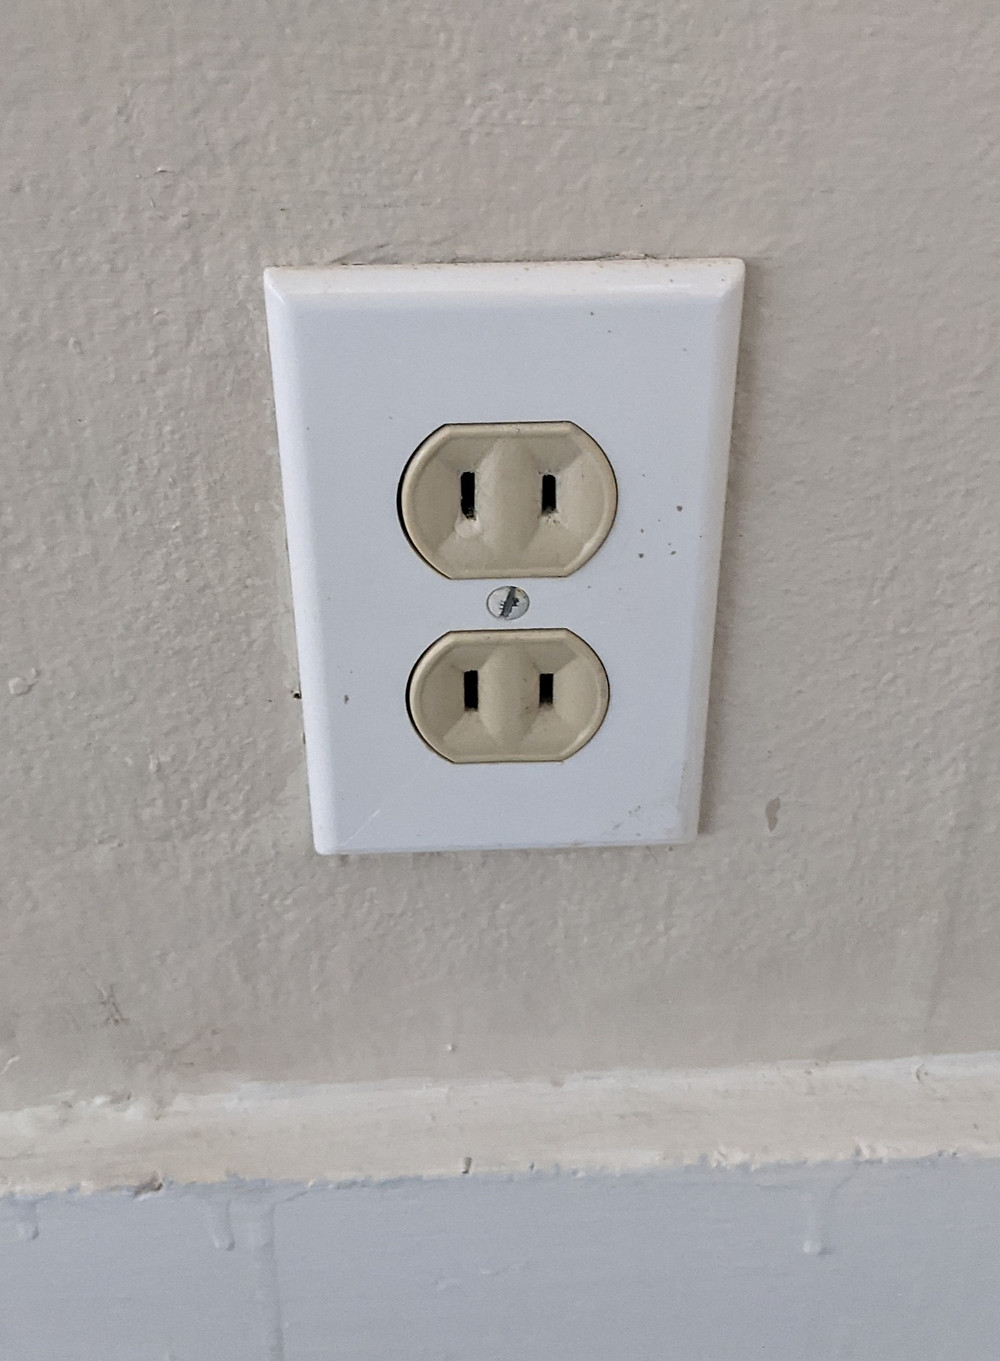 An old, 2 prong outlet. Often people upgrade but don't add a ground